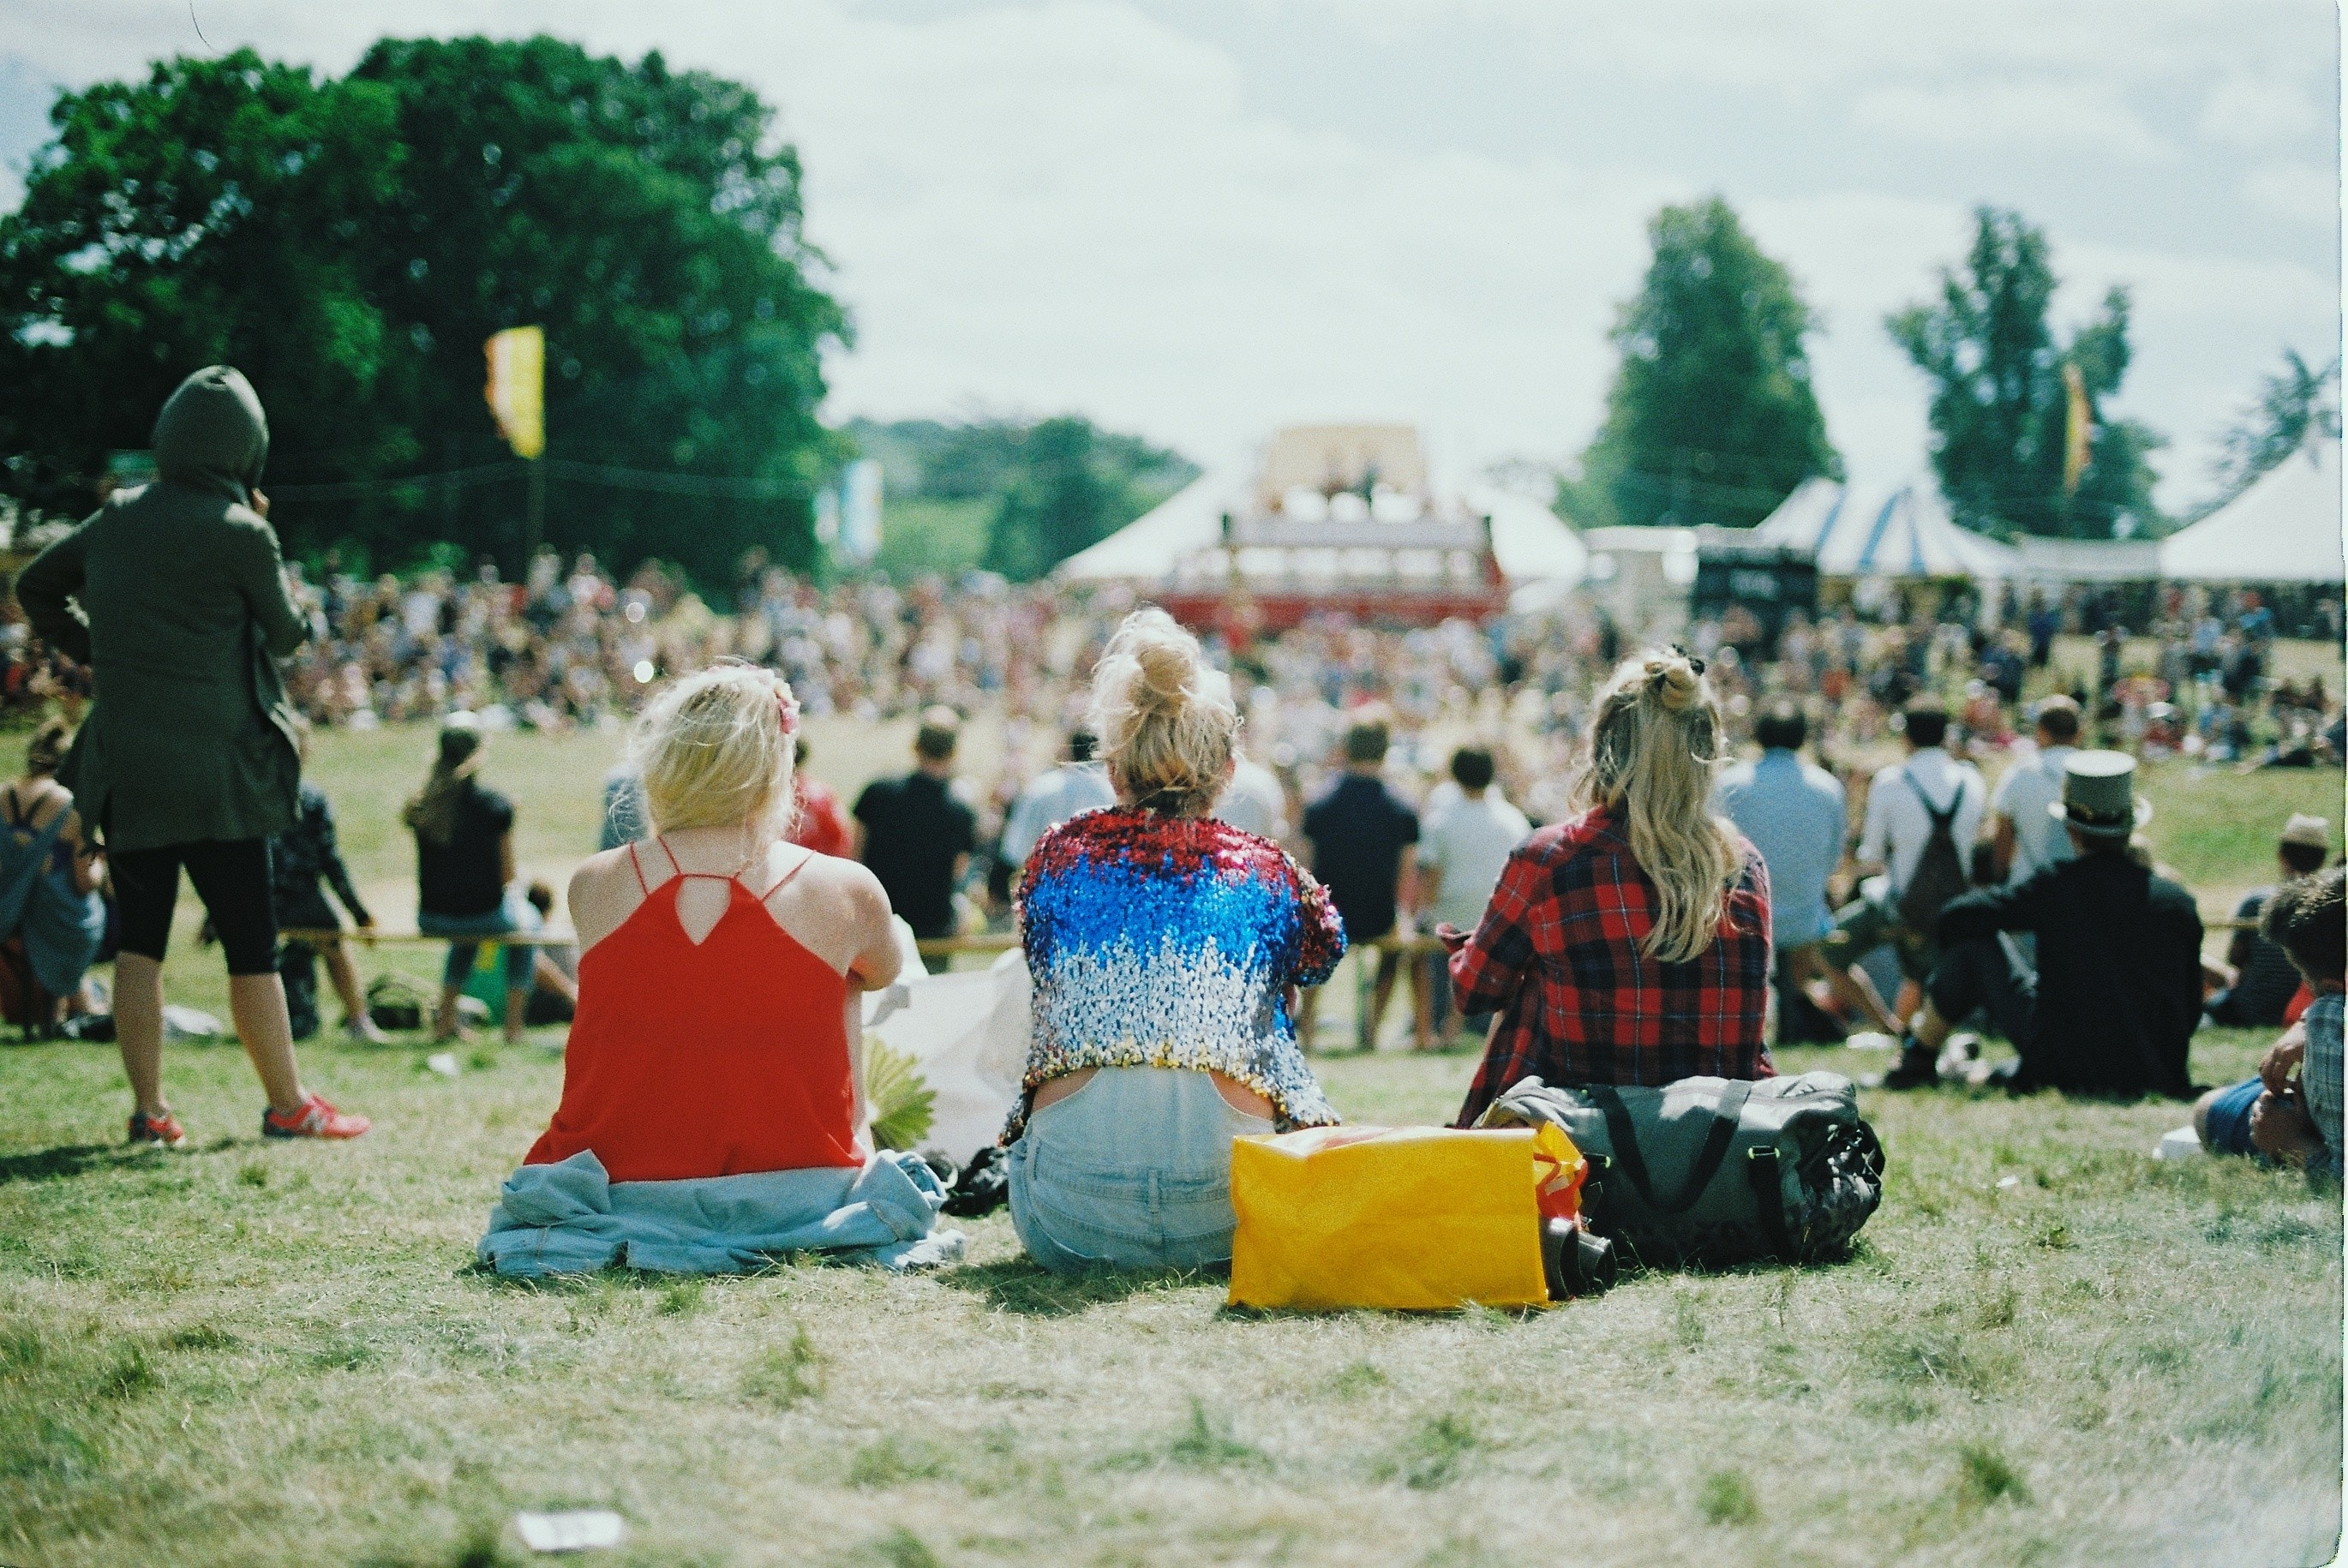 Three female friends sit on a field at a busy festival, with their backs to the camera. You can invite your non-believing friends to read the Bible with you and they, and you, will be blessed.